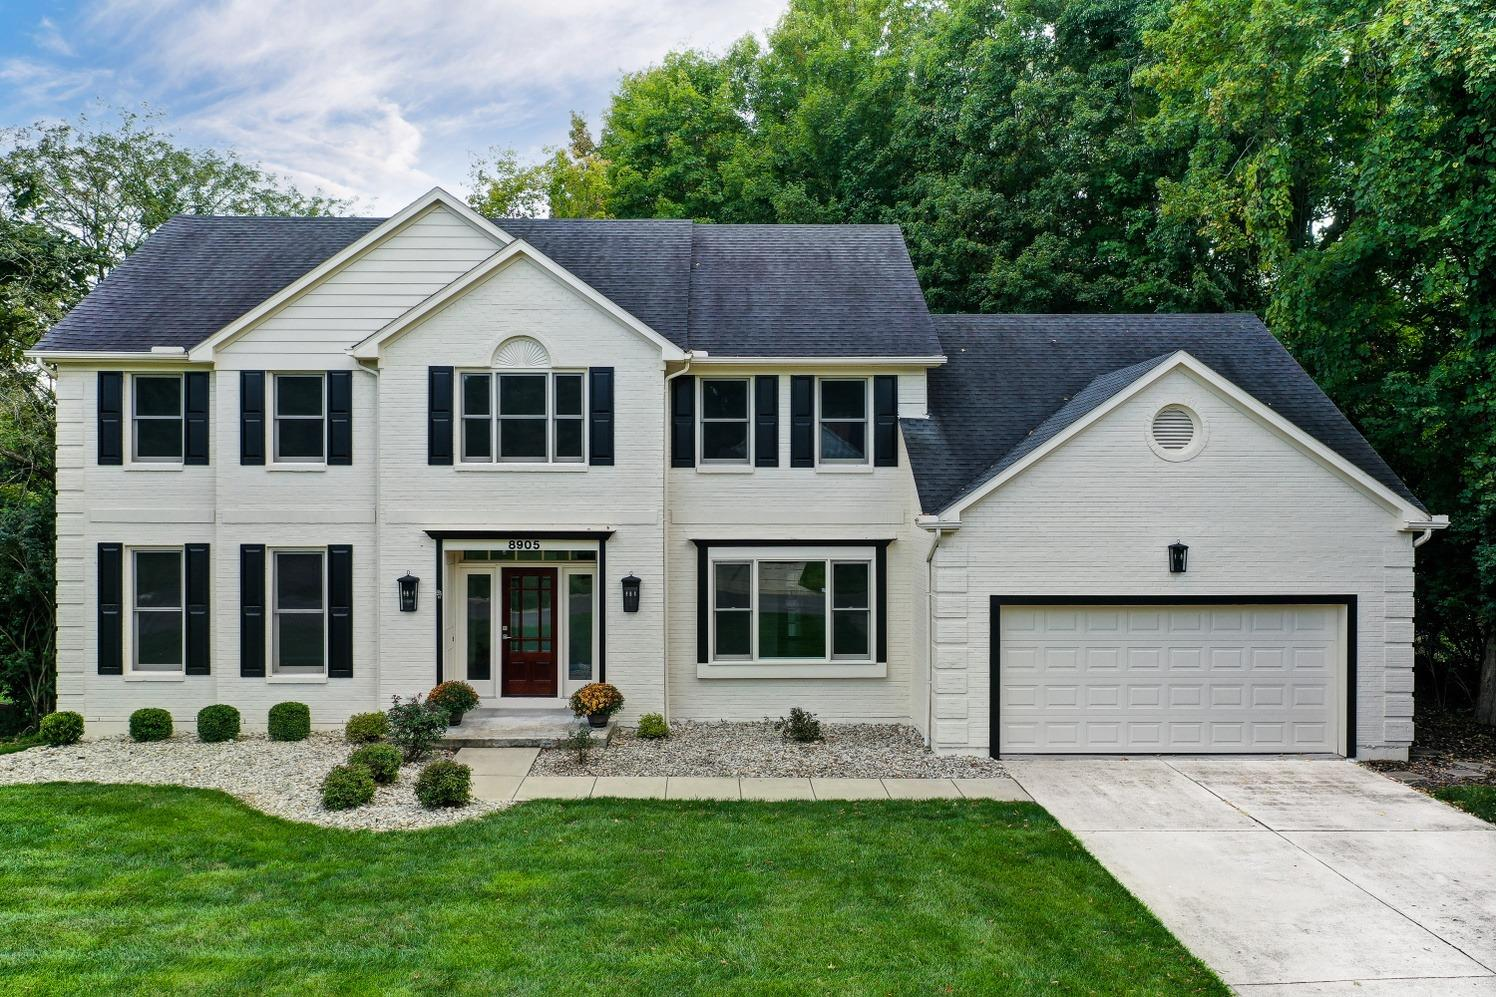 8905 Appleseed Drive, Symmes Twp, Ohio 45249, 5 Bedrooms Bedrooms, 12 Rooms Rooms,3 BathroomsBathrooms,Single Family Residence,For Sale,Appleseed,1718055